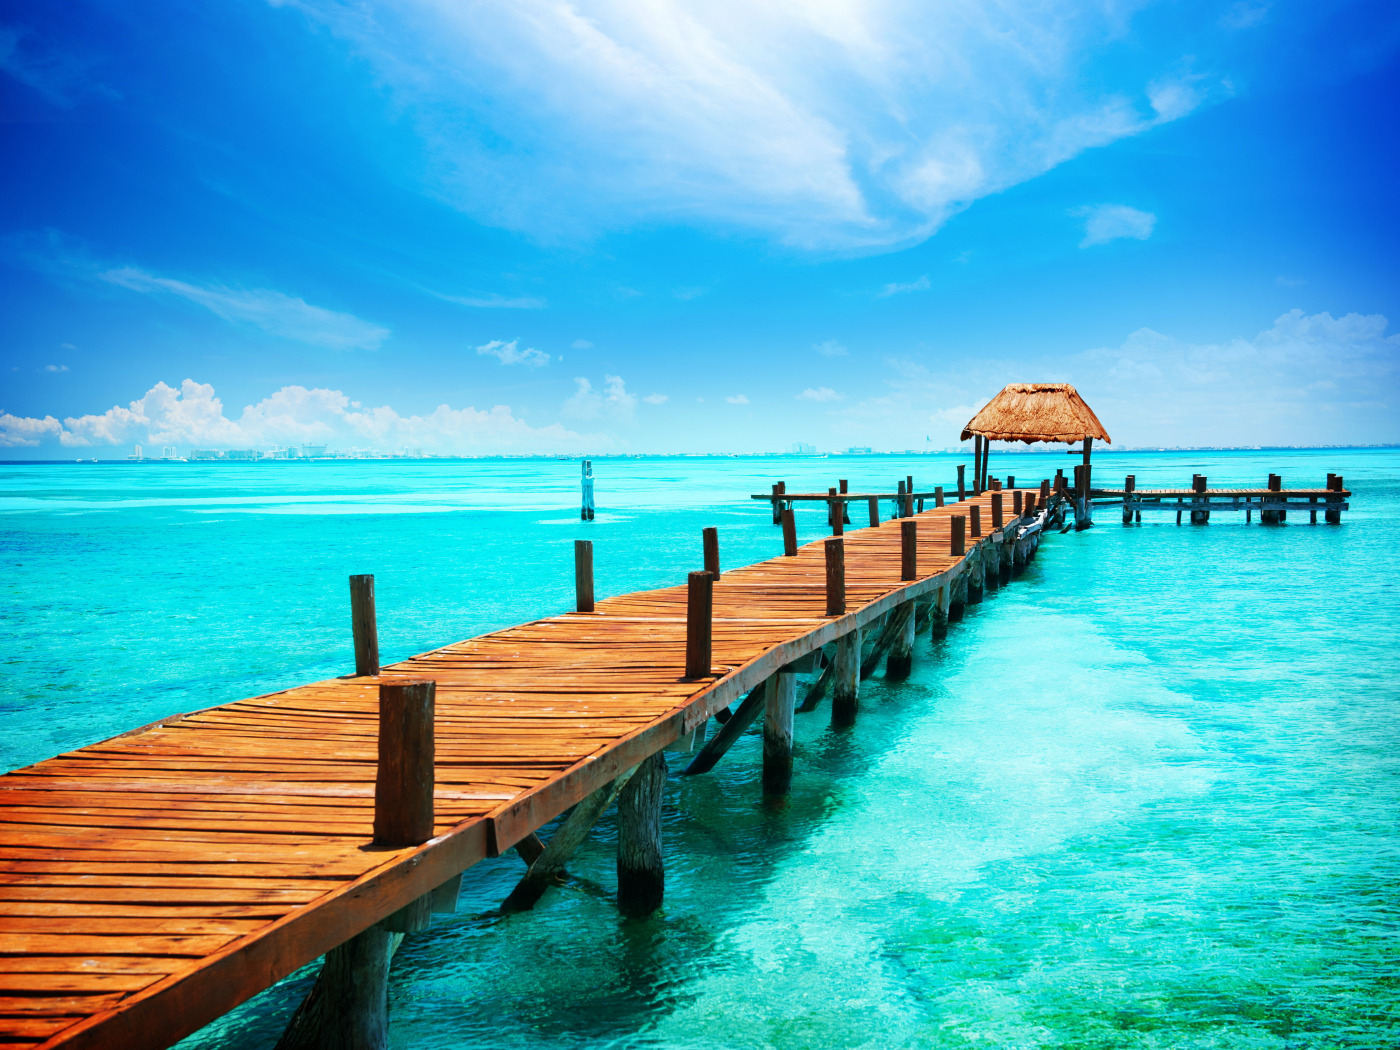 Pier To Paradise Wallpaper